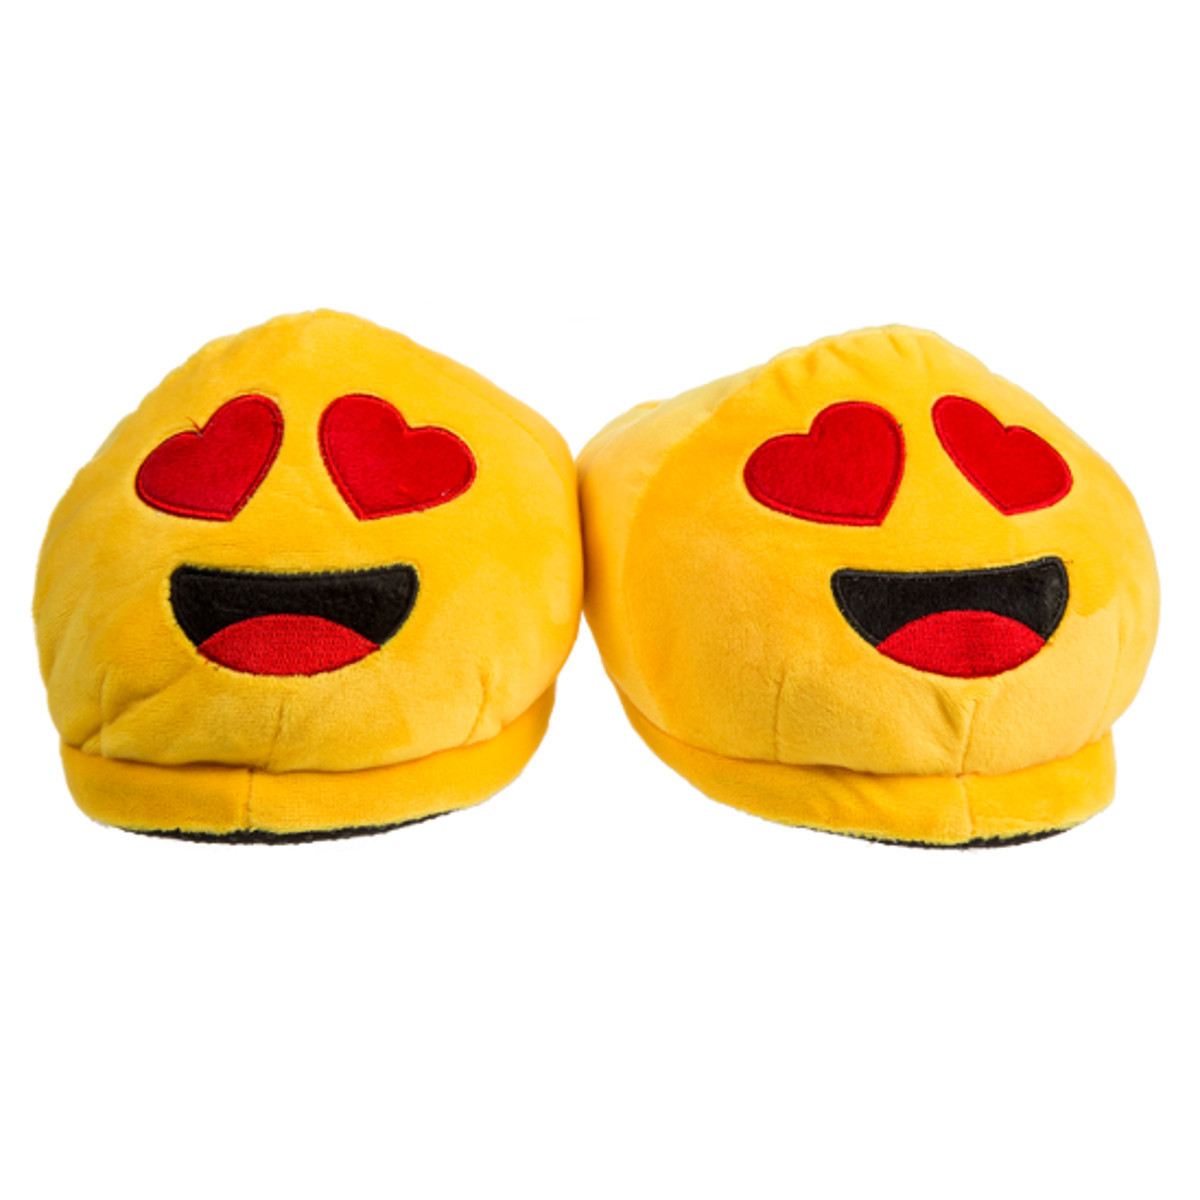 emotional slippers - sizes 37 - 42